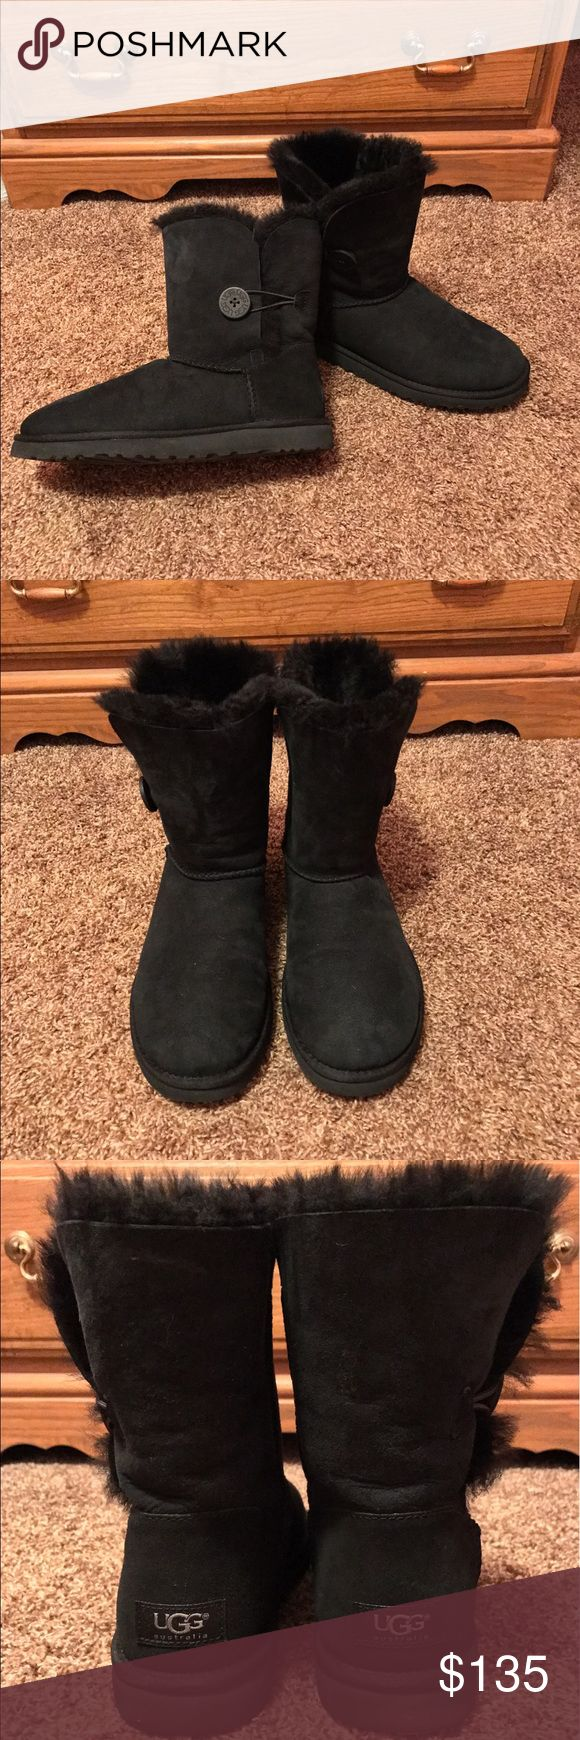 UGG Bailey Button In excellent condition only worn once. I do not have the box anymore, but I bought them from the UGG outlet store. No flaws and sprayed with the waterproof spray. Less on Ⓜ️ercari UGG Shoes Winter & Rain Boots